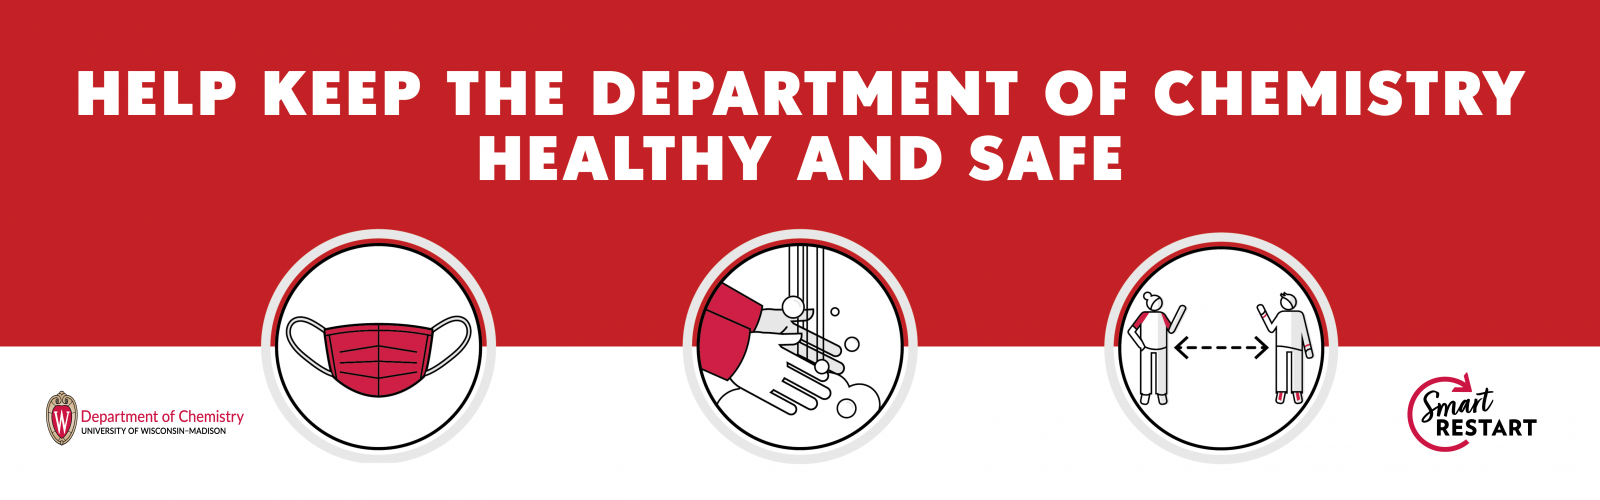 Help Keep the Department of Chemistry Healthy and Safe